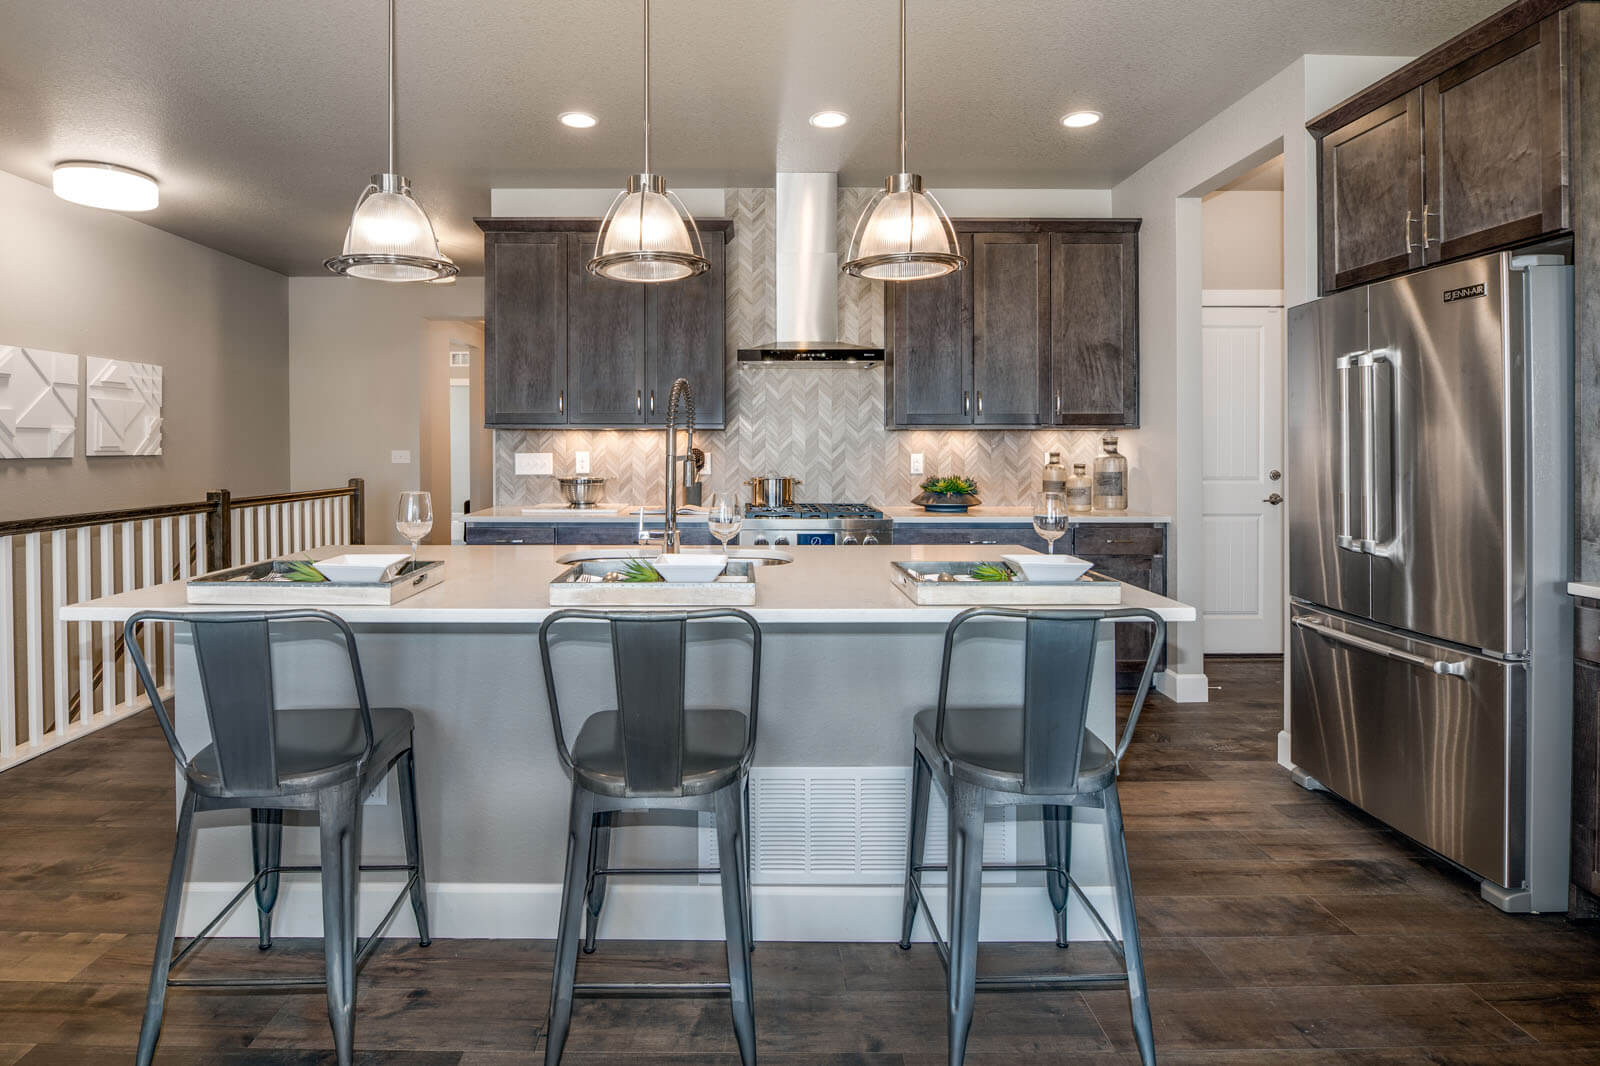 New Denver  Model Home Ponderosa in Lincoln Creek, located at 11809 Barrentine Loop, Parker, CO Built By Cardel Homes Denver